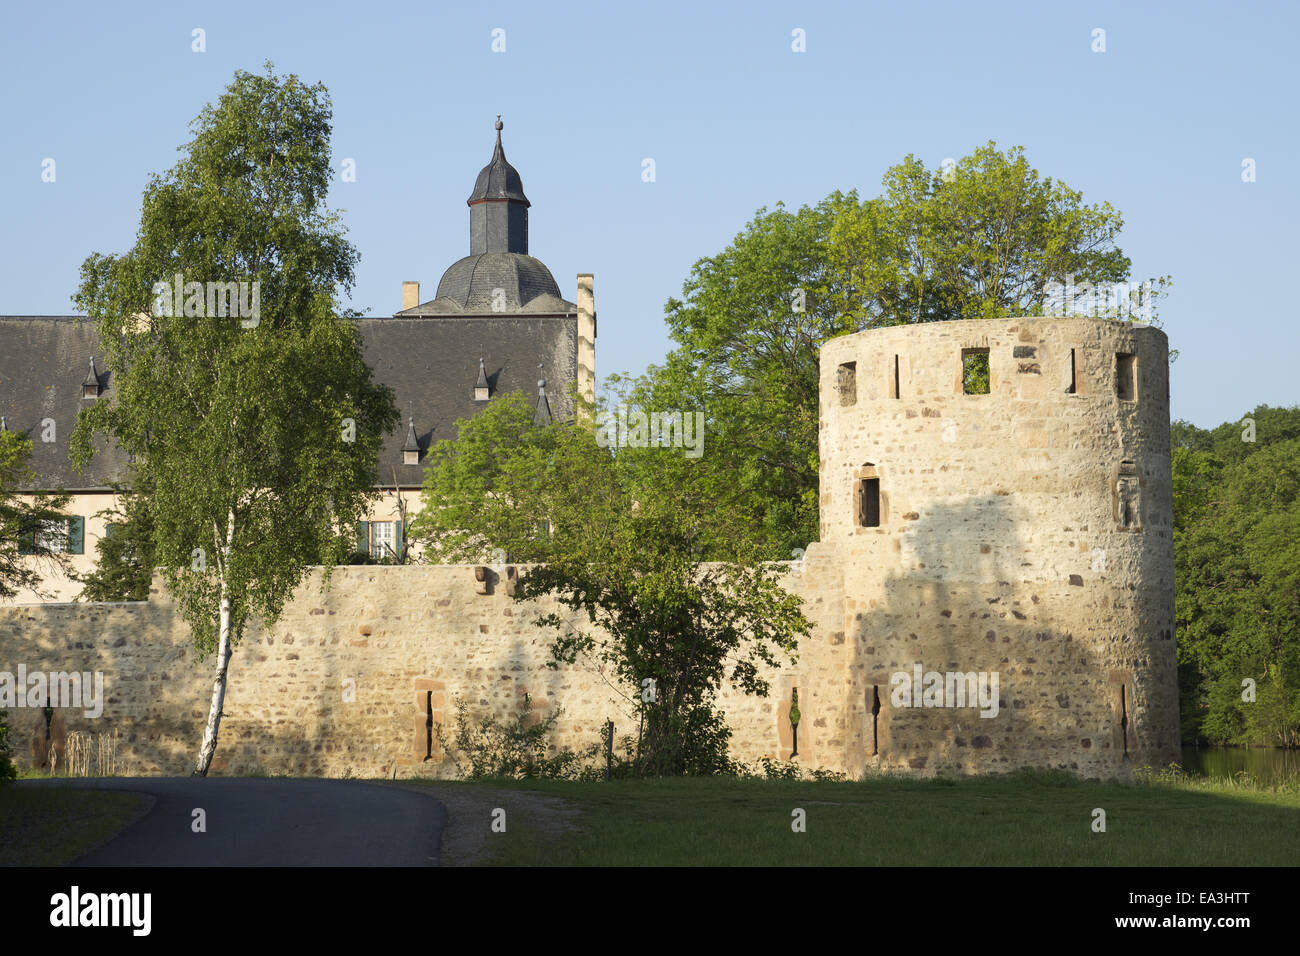 Burg veynau euskirchen wisskirchen germany stock photo royalty free image 75067912 alamy - Euskirchen mobel ...